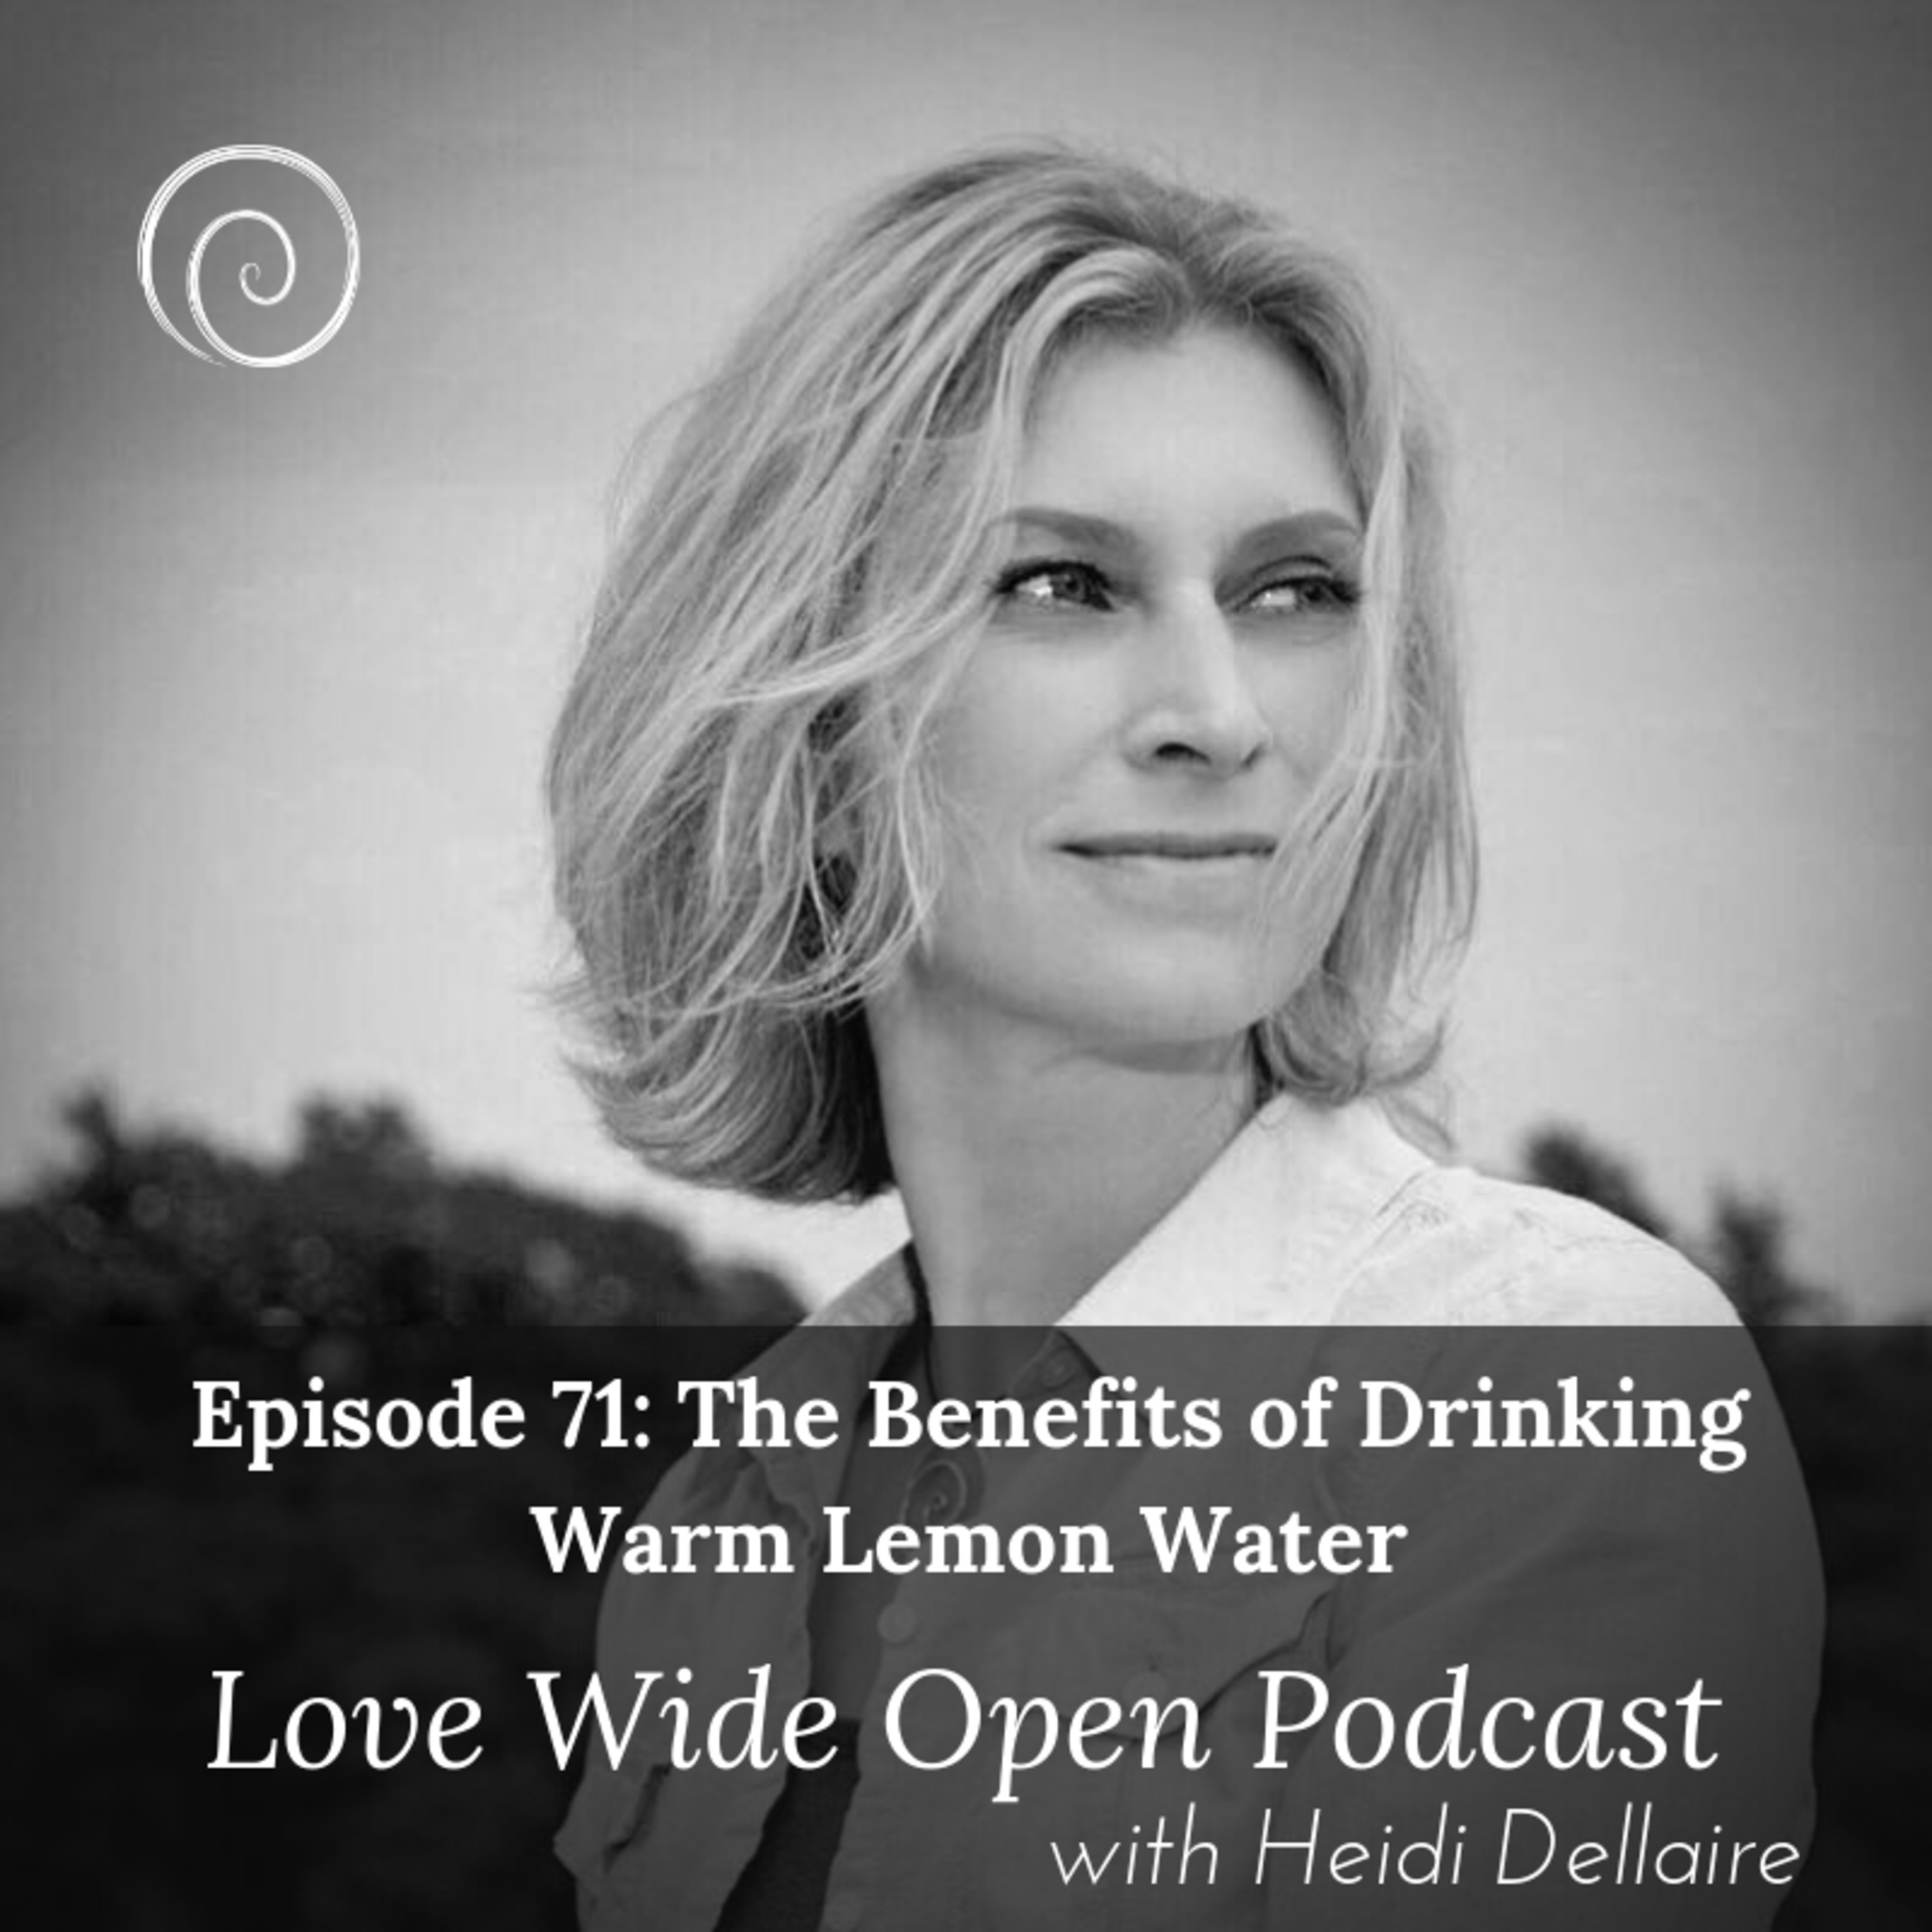 Ep 71 The Benefits of Drinking Warm Lemon Water First Thing in the Morning - Ayurveda Tips